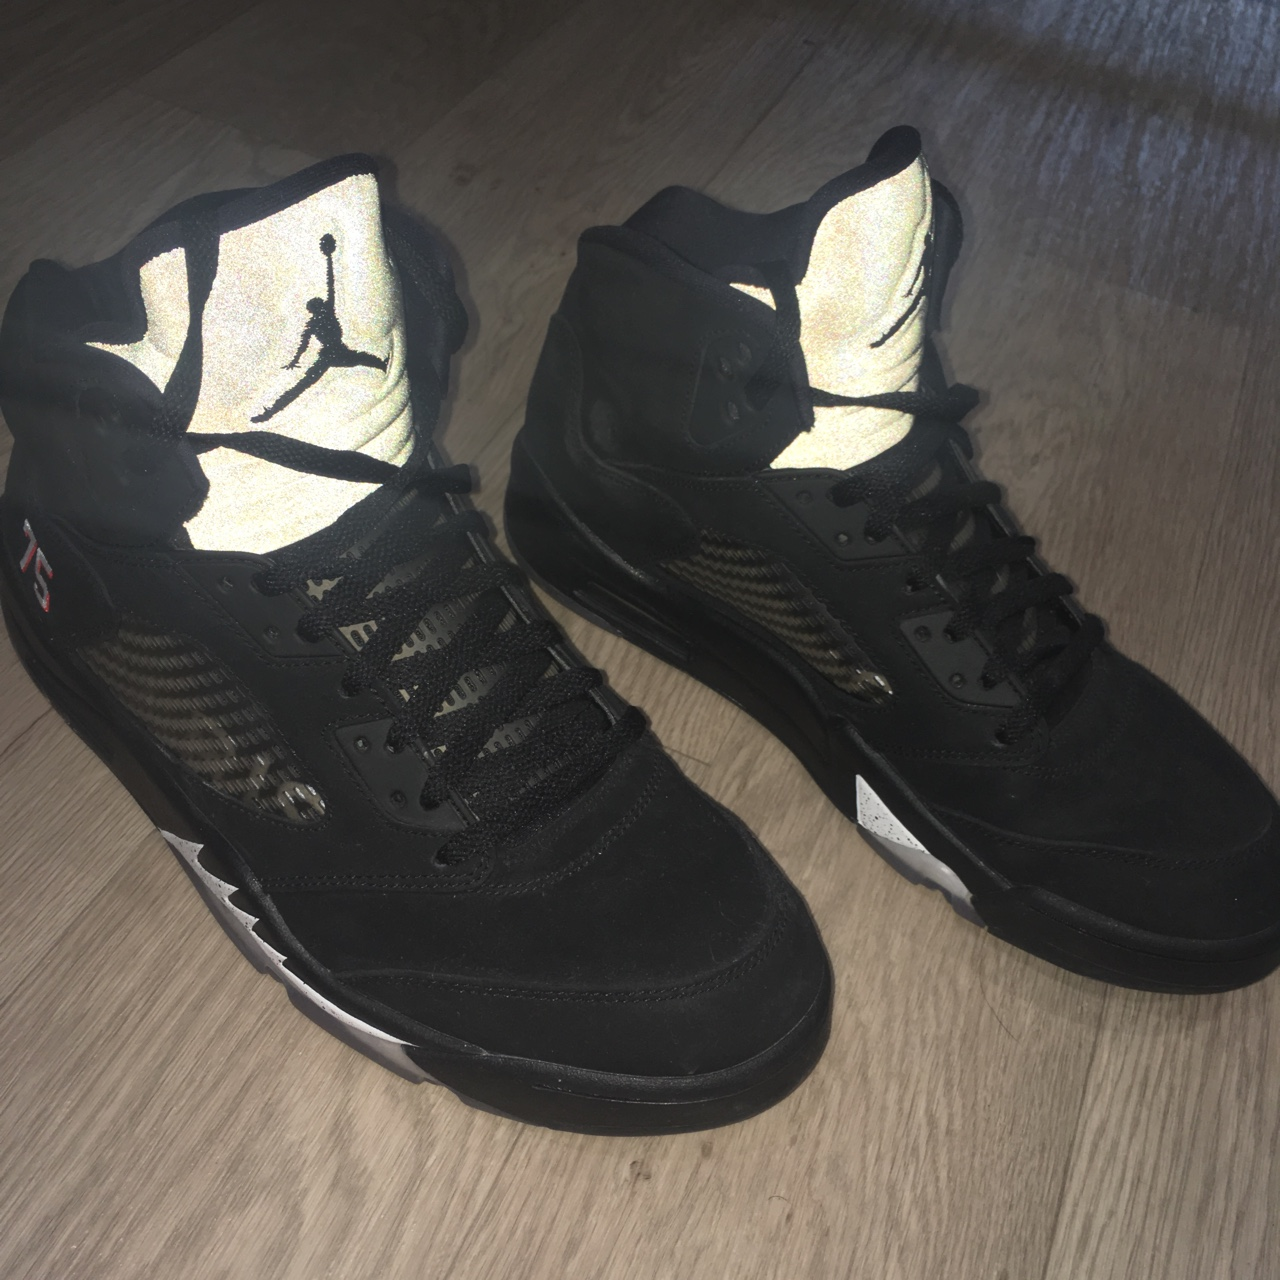 size 40 6118c dac5d PSG Jordan 5 9/10 condition Minimal sign of wear,... - Depop